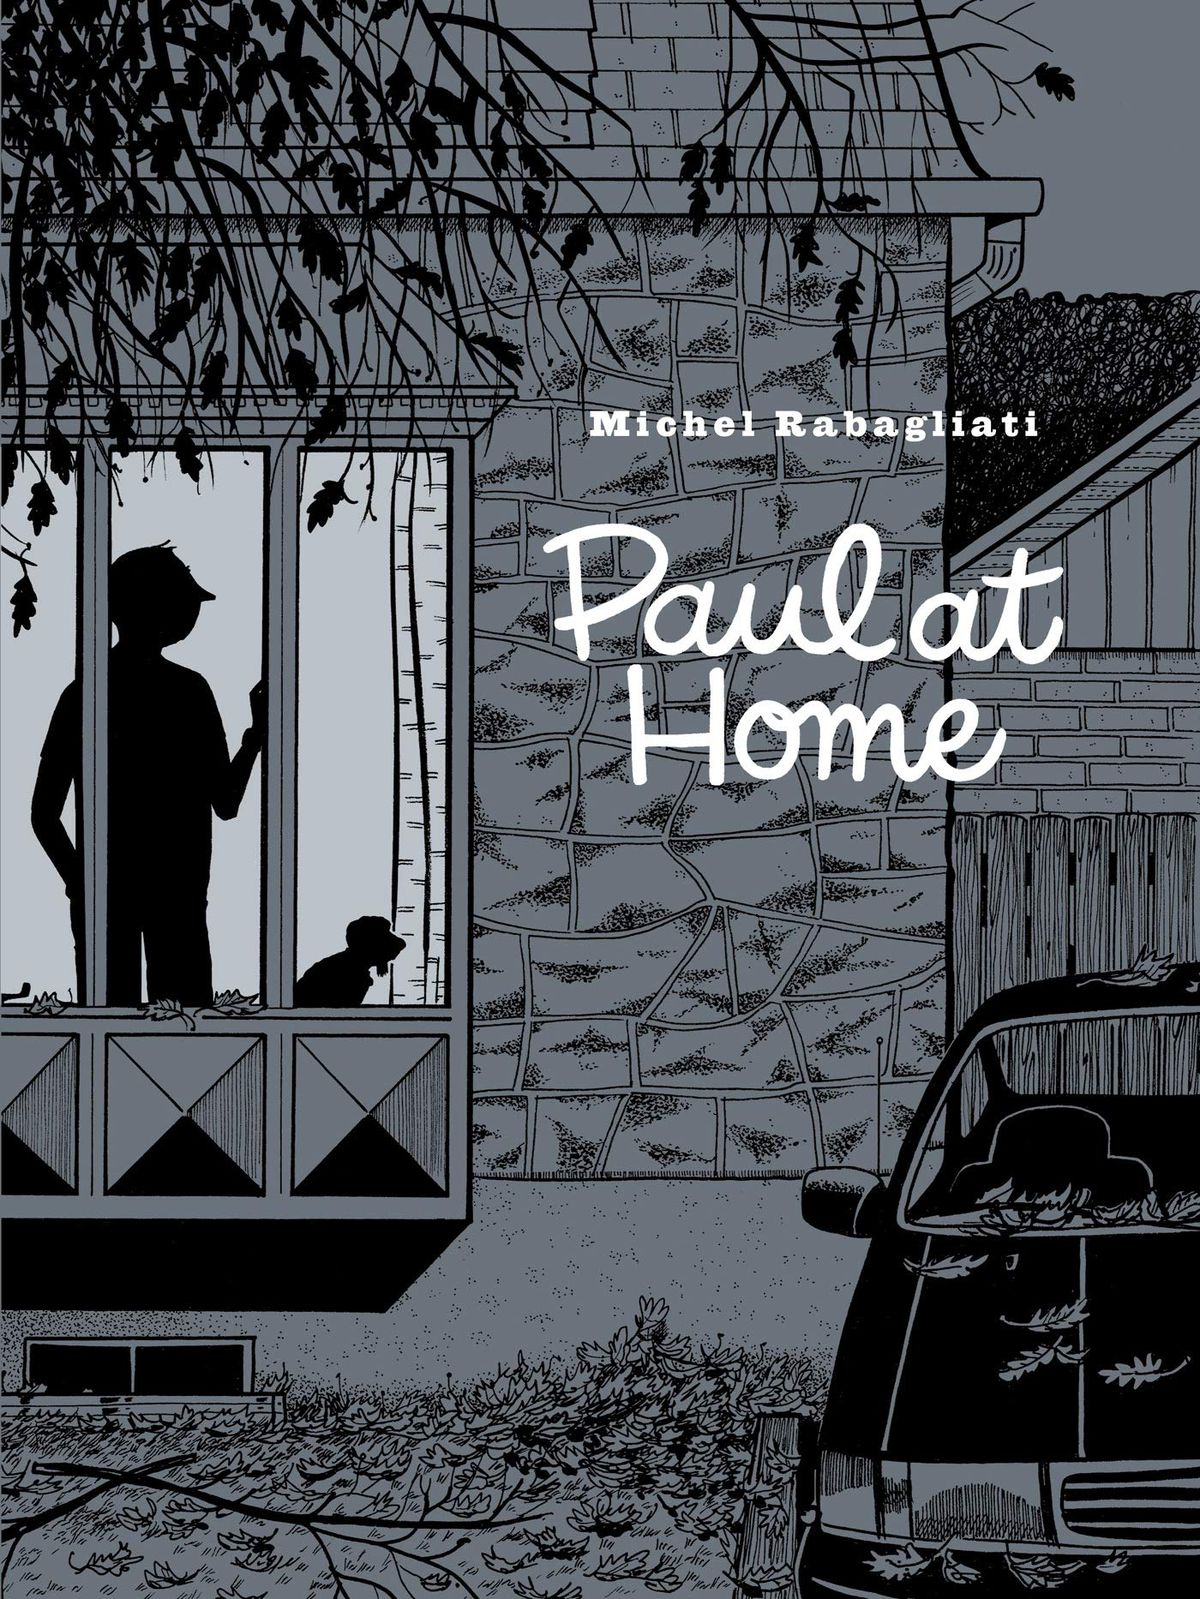 Paul stands silhouetted in the window of his home on the cover of Paul at Home (2020).